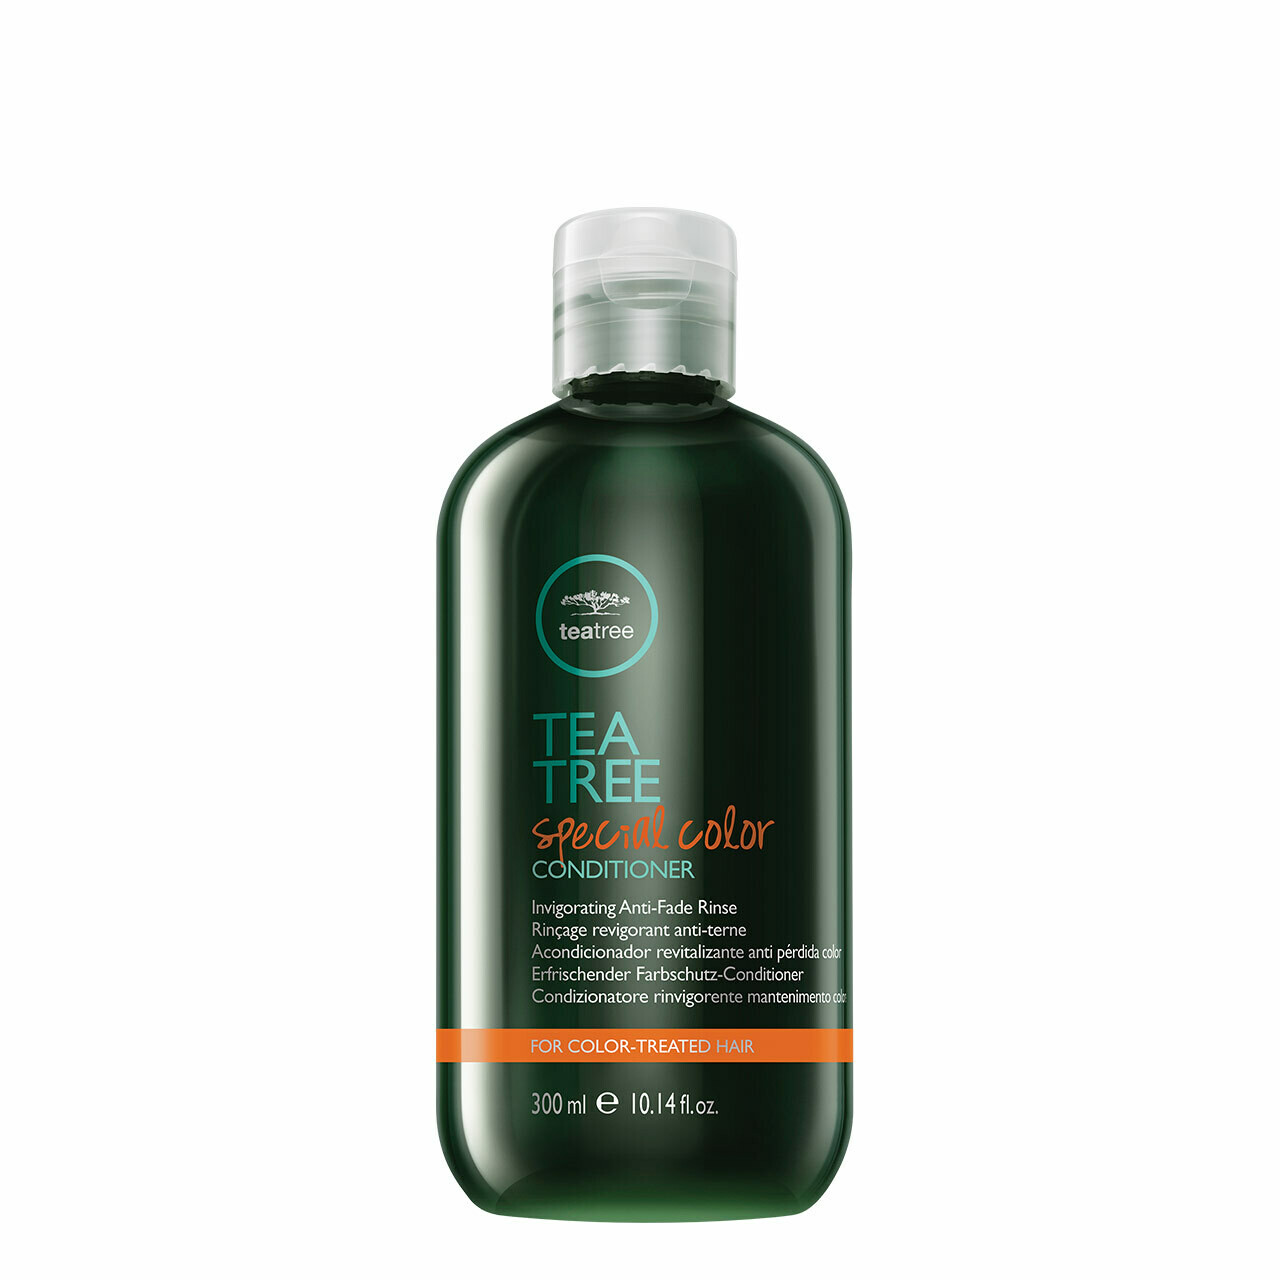 Tea Tree Special Color Conditioner 300ml